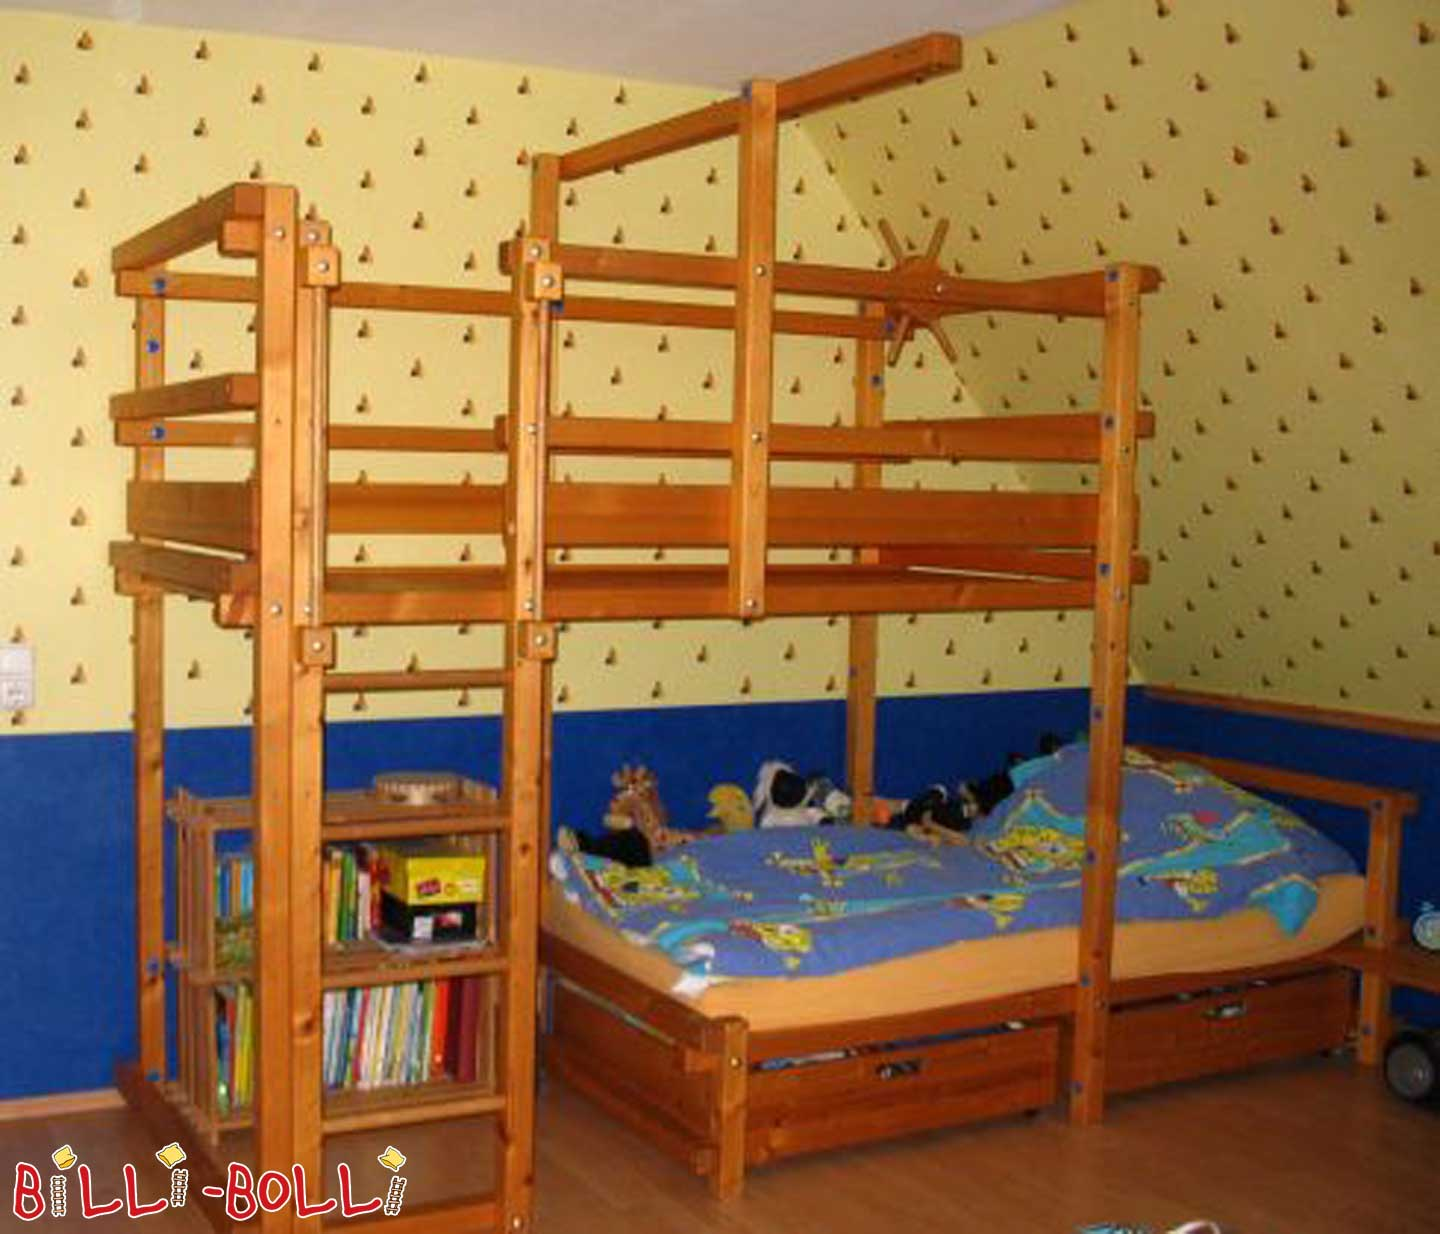 secondhand seite 133 billi bolli kinderm bel. Black Bedroom Furniture Sets. Home Design Ideas